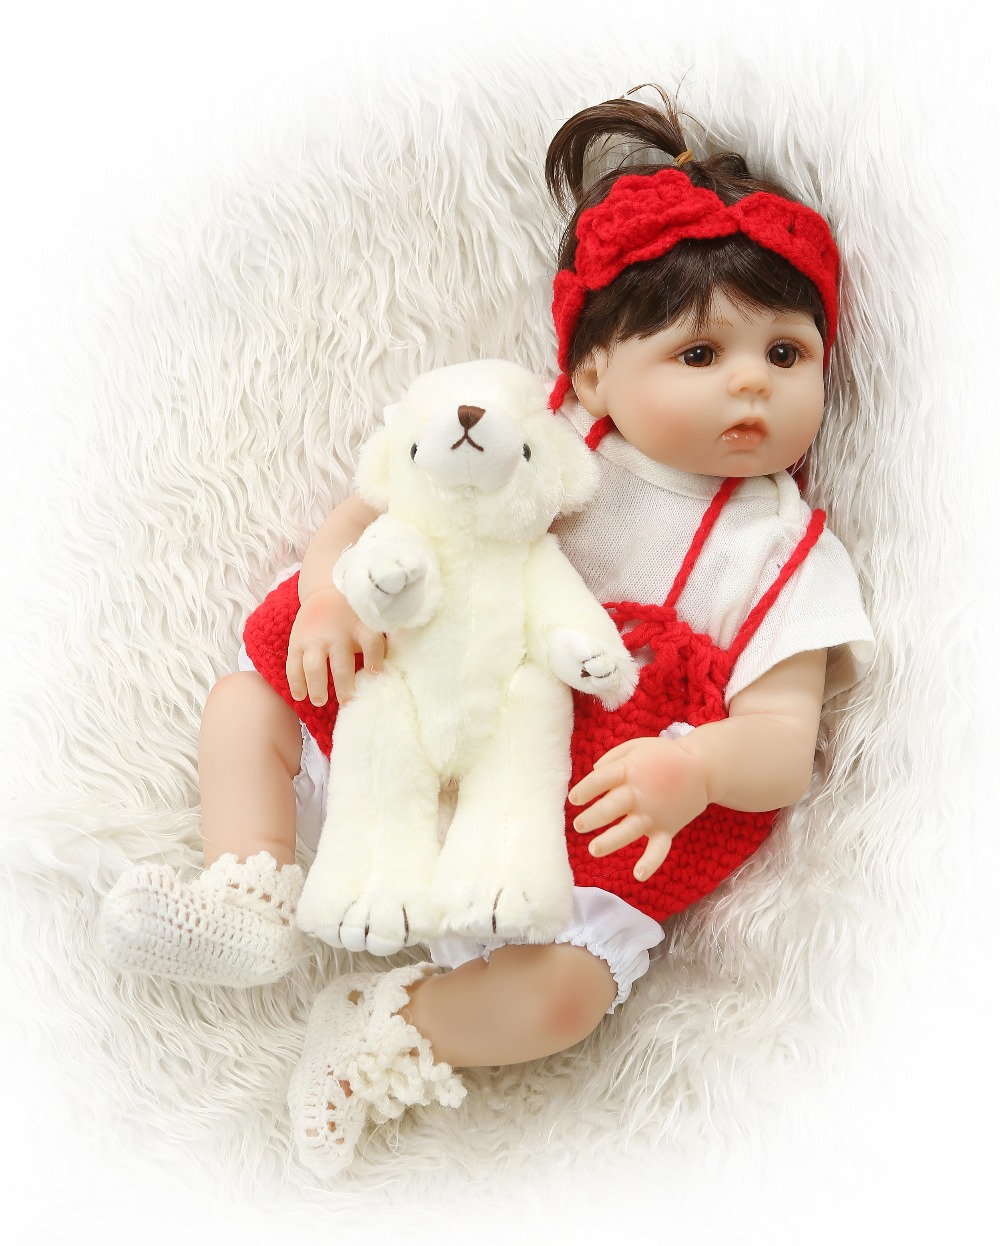 Dolls 48cm Silicone Reborn Baby Doll Kids Playmate Gift For Boy 19inch Reborn Men Toys For Bouquets Doll Bebe Reborn Christmas Present High Standard In Quality And Hygiene